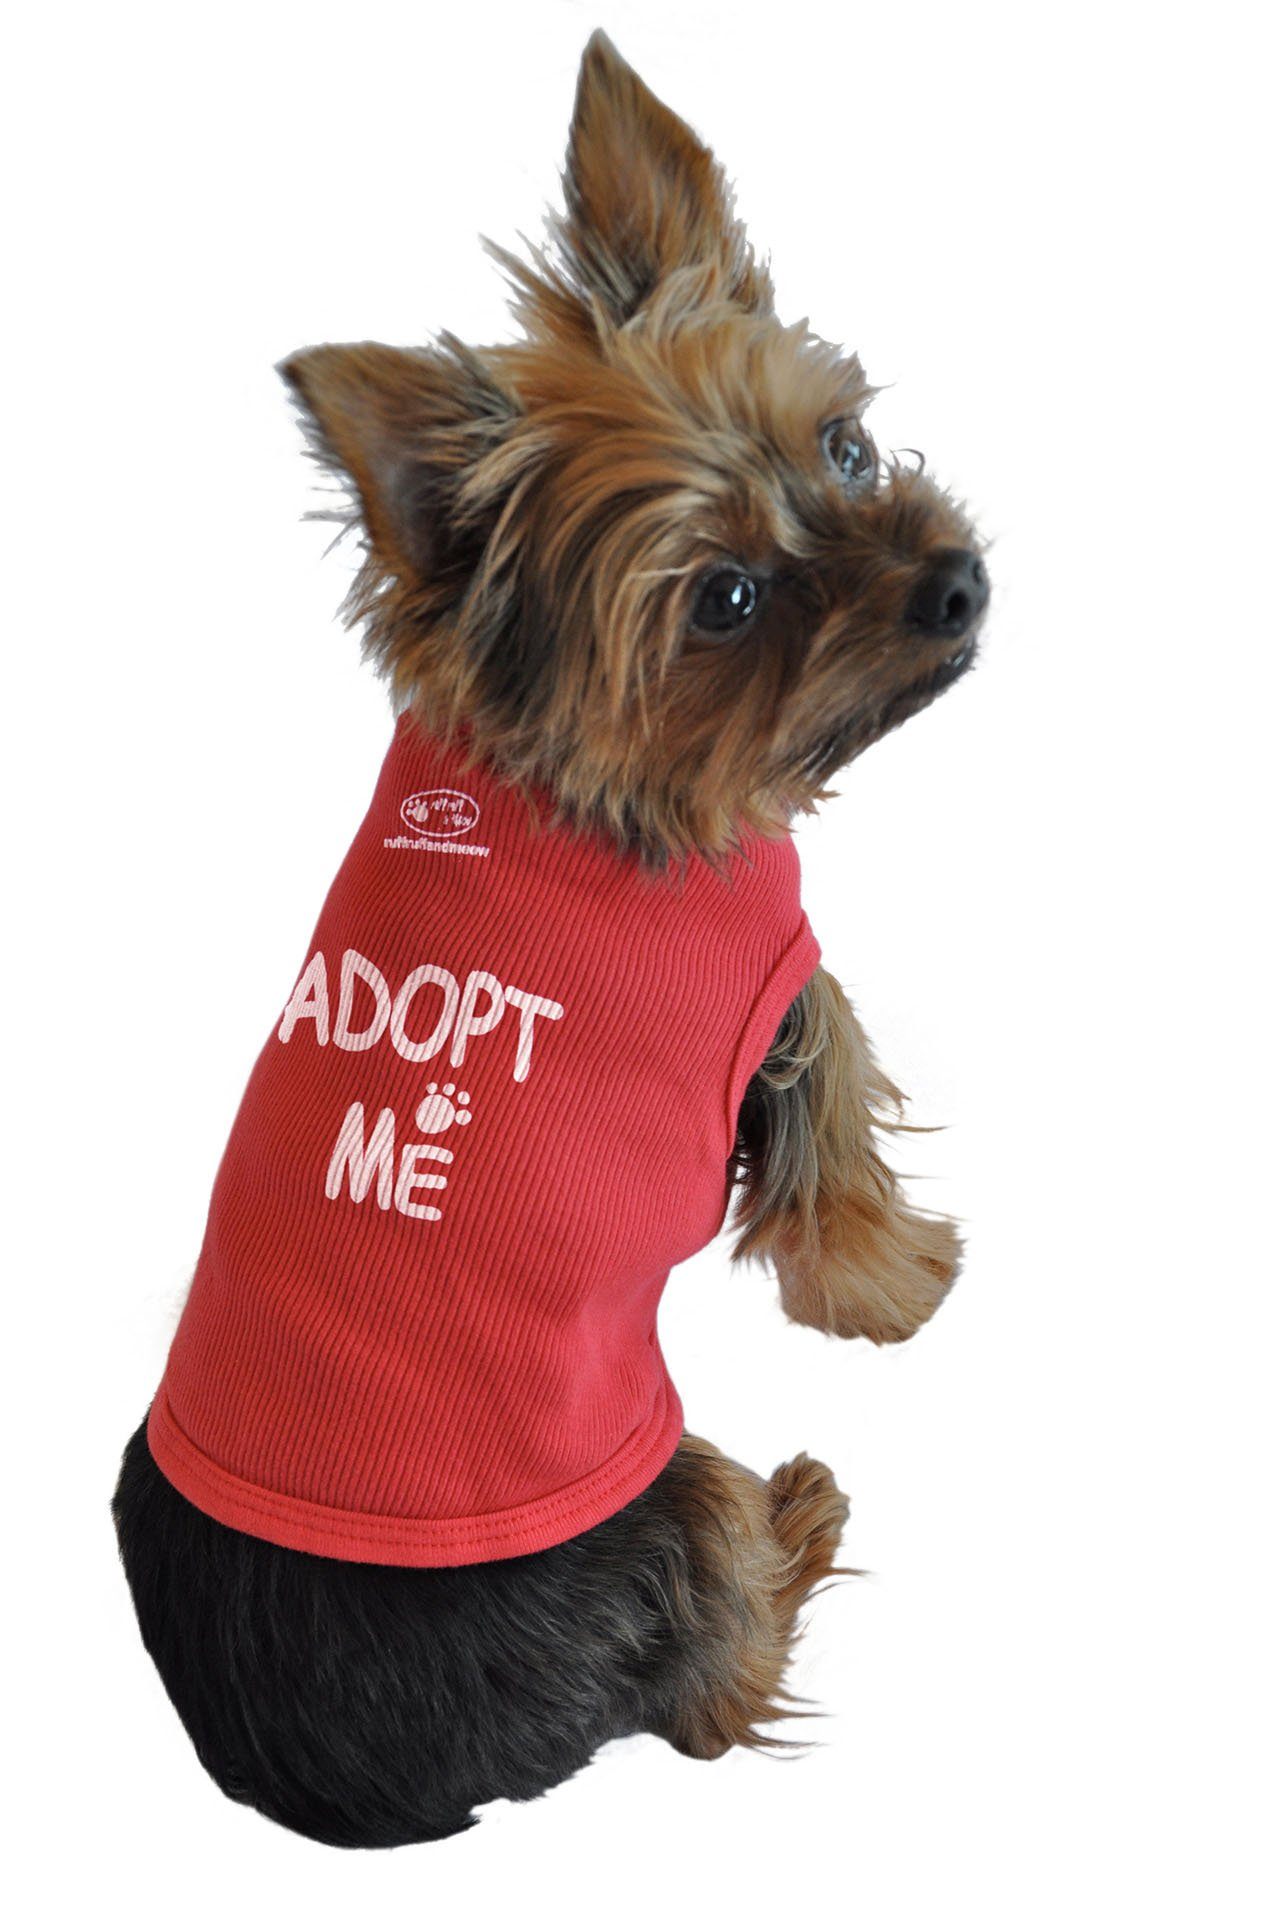 Ruff Ruff and Meow Dog Tank Top, Adopt Me, Red, Extra-Small